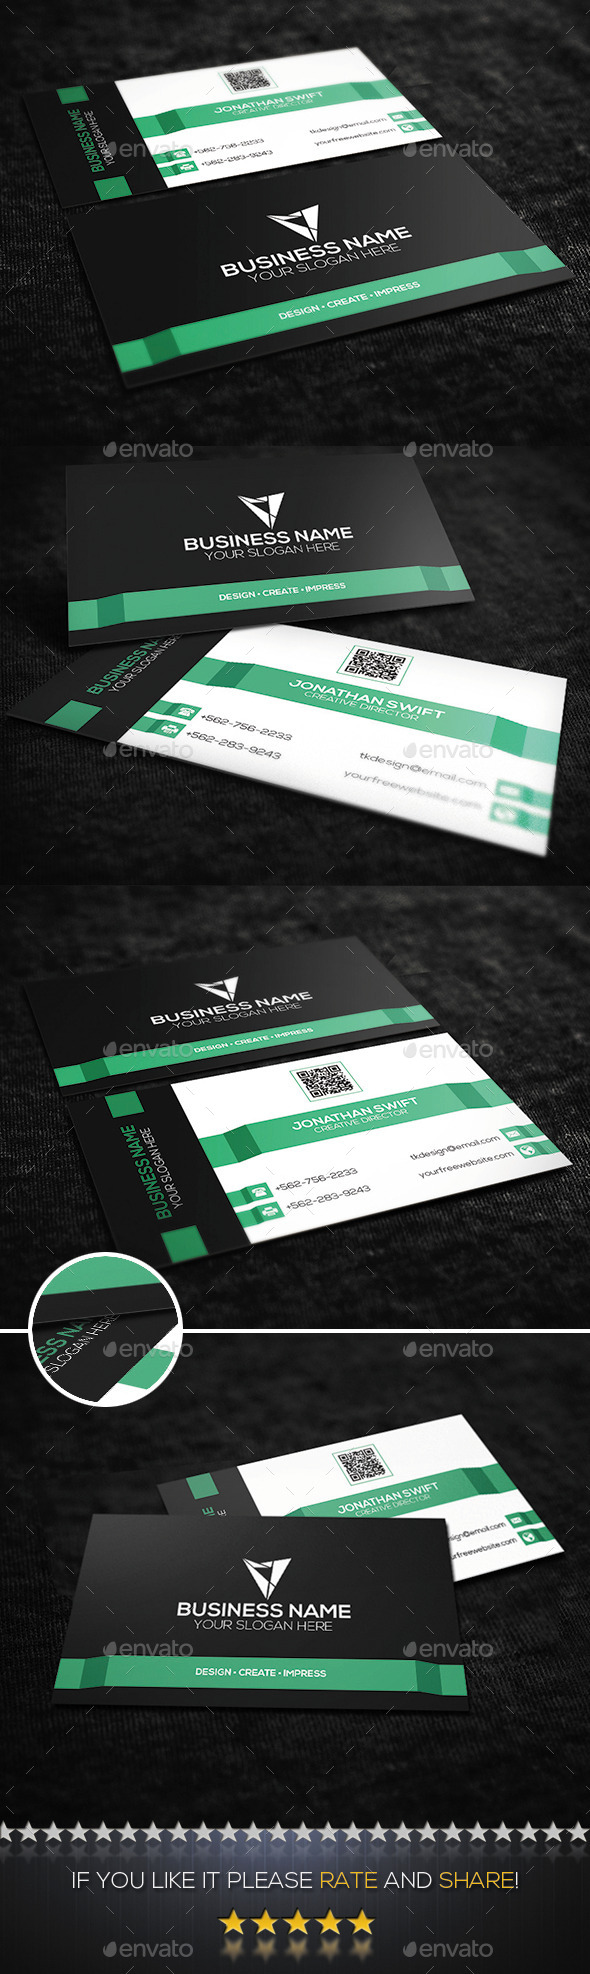 Mint Green Corporate Business Card  - Corporate Business Cards